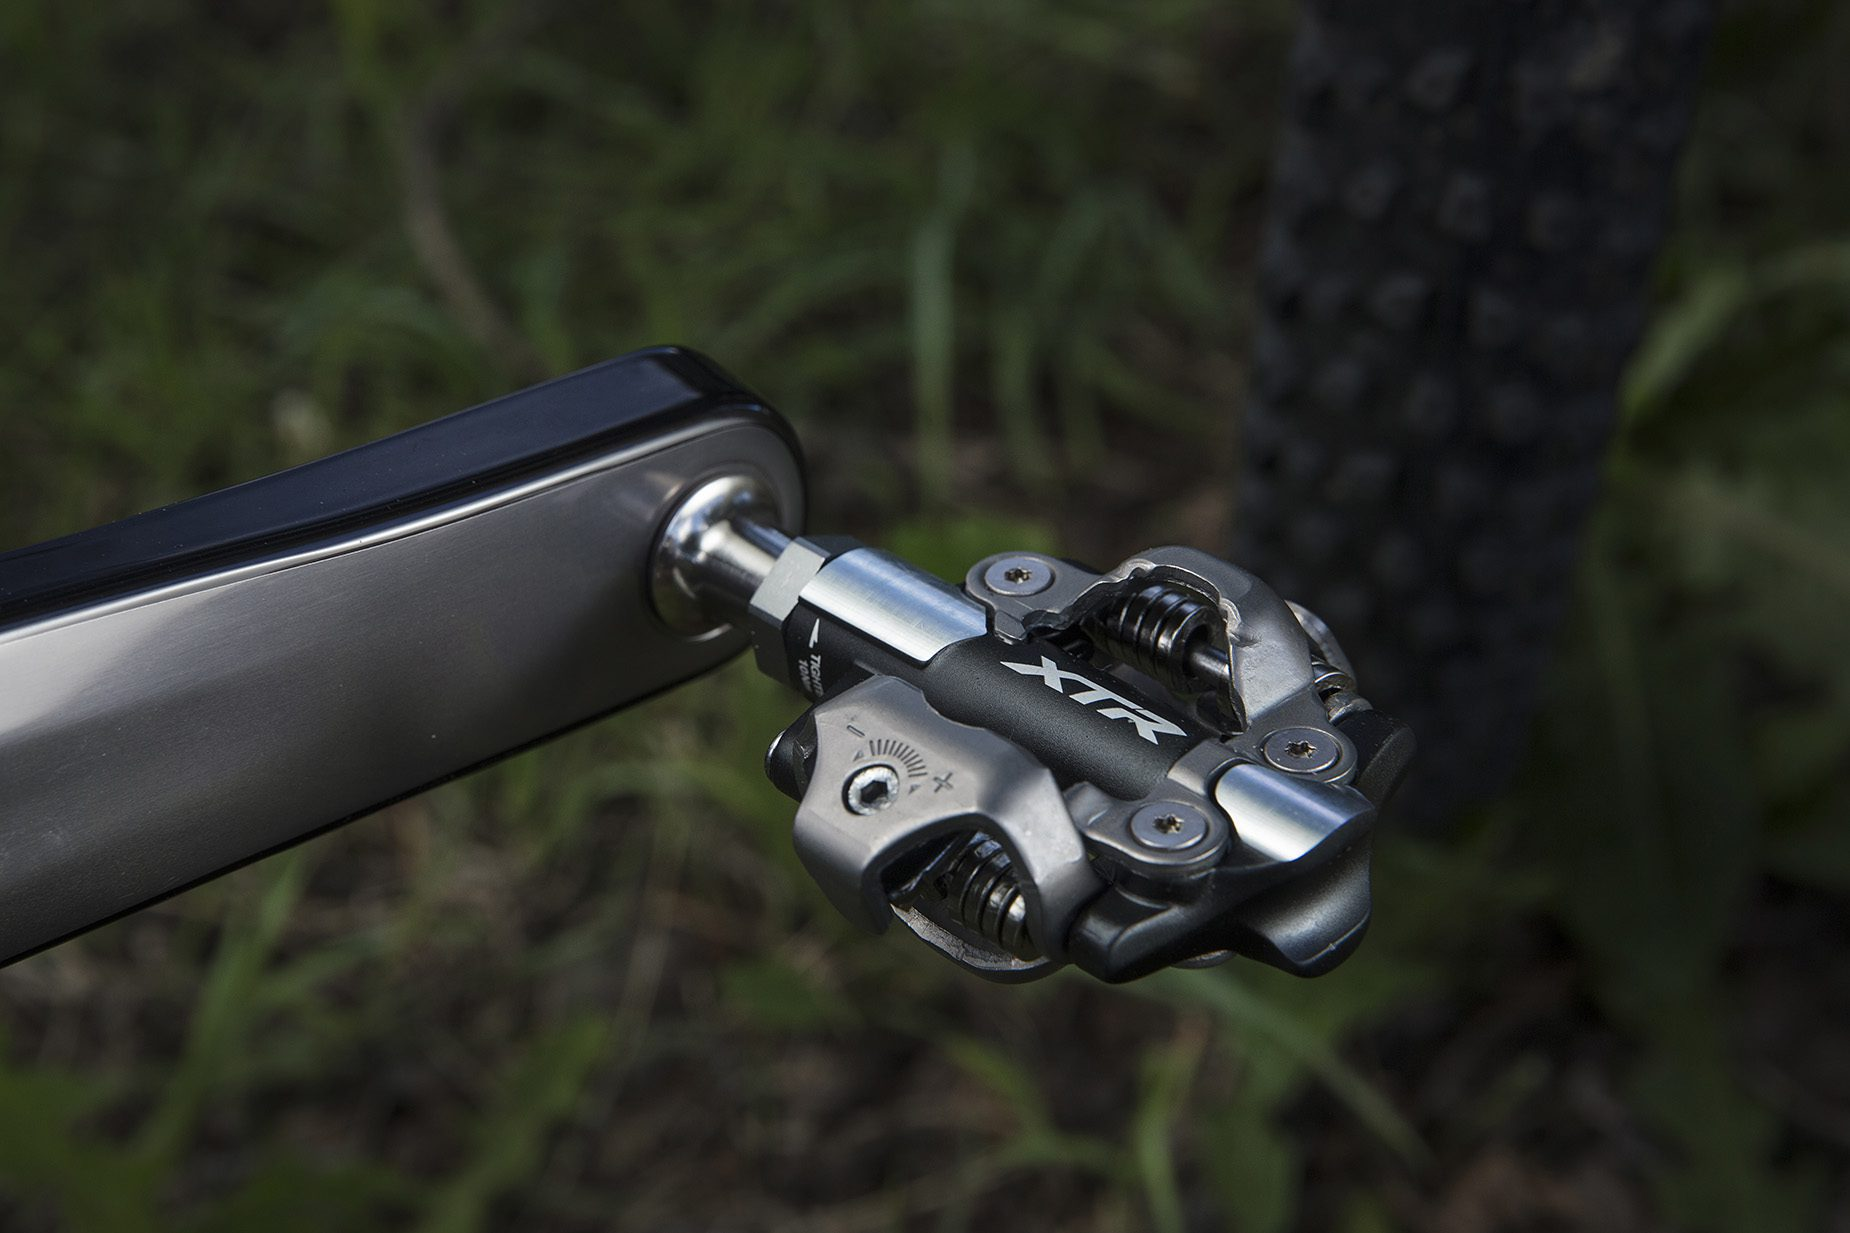 Shimano XTR M9100 cross country pedal